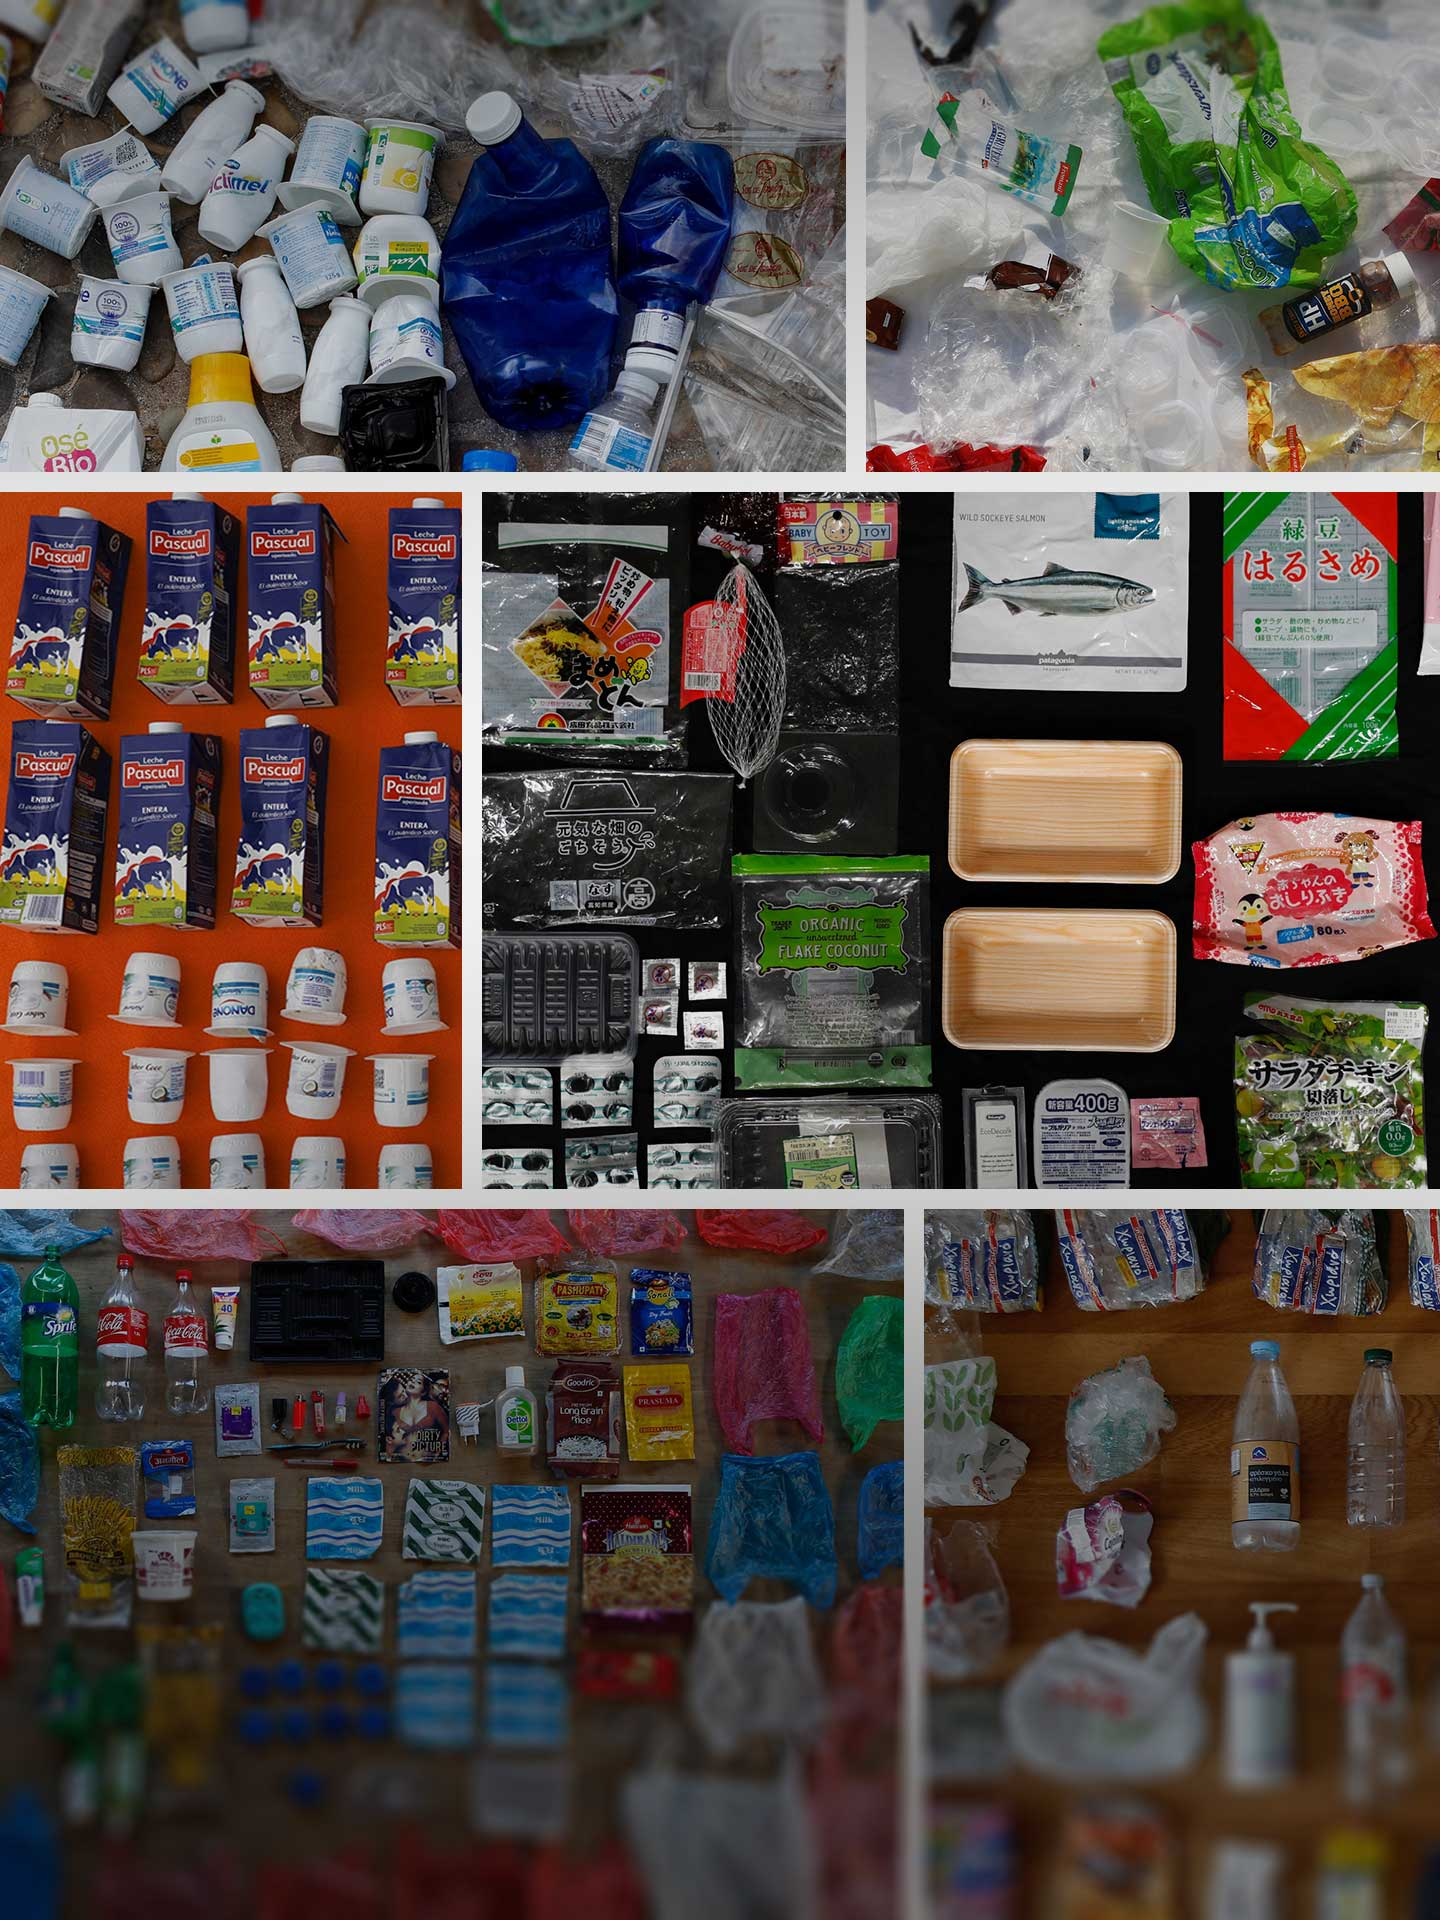 Faced With Shops Full Of Food And Other Goods Swathed In Plastic Families Across The World Are Trying To Reduce Its Use Recycle Wherever Possible